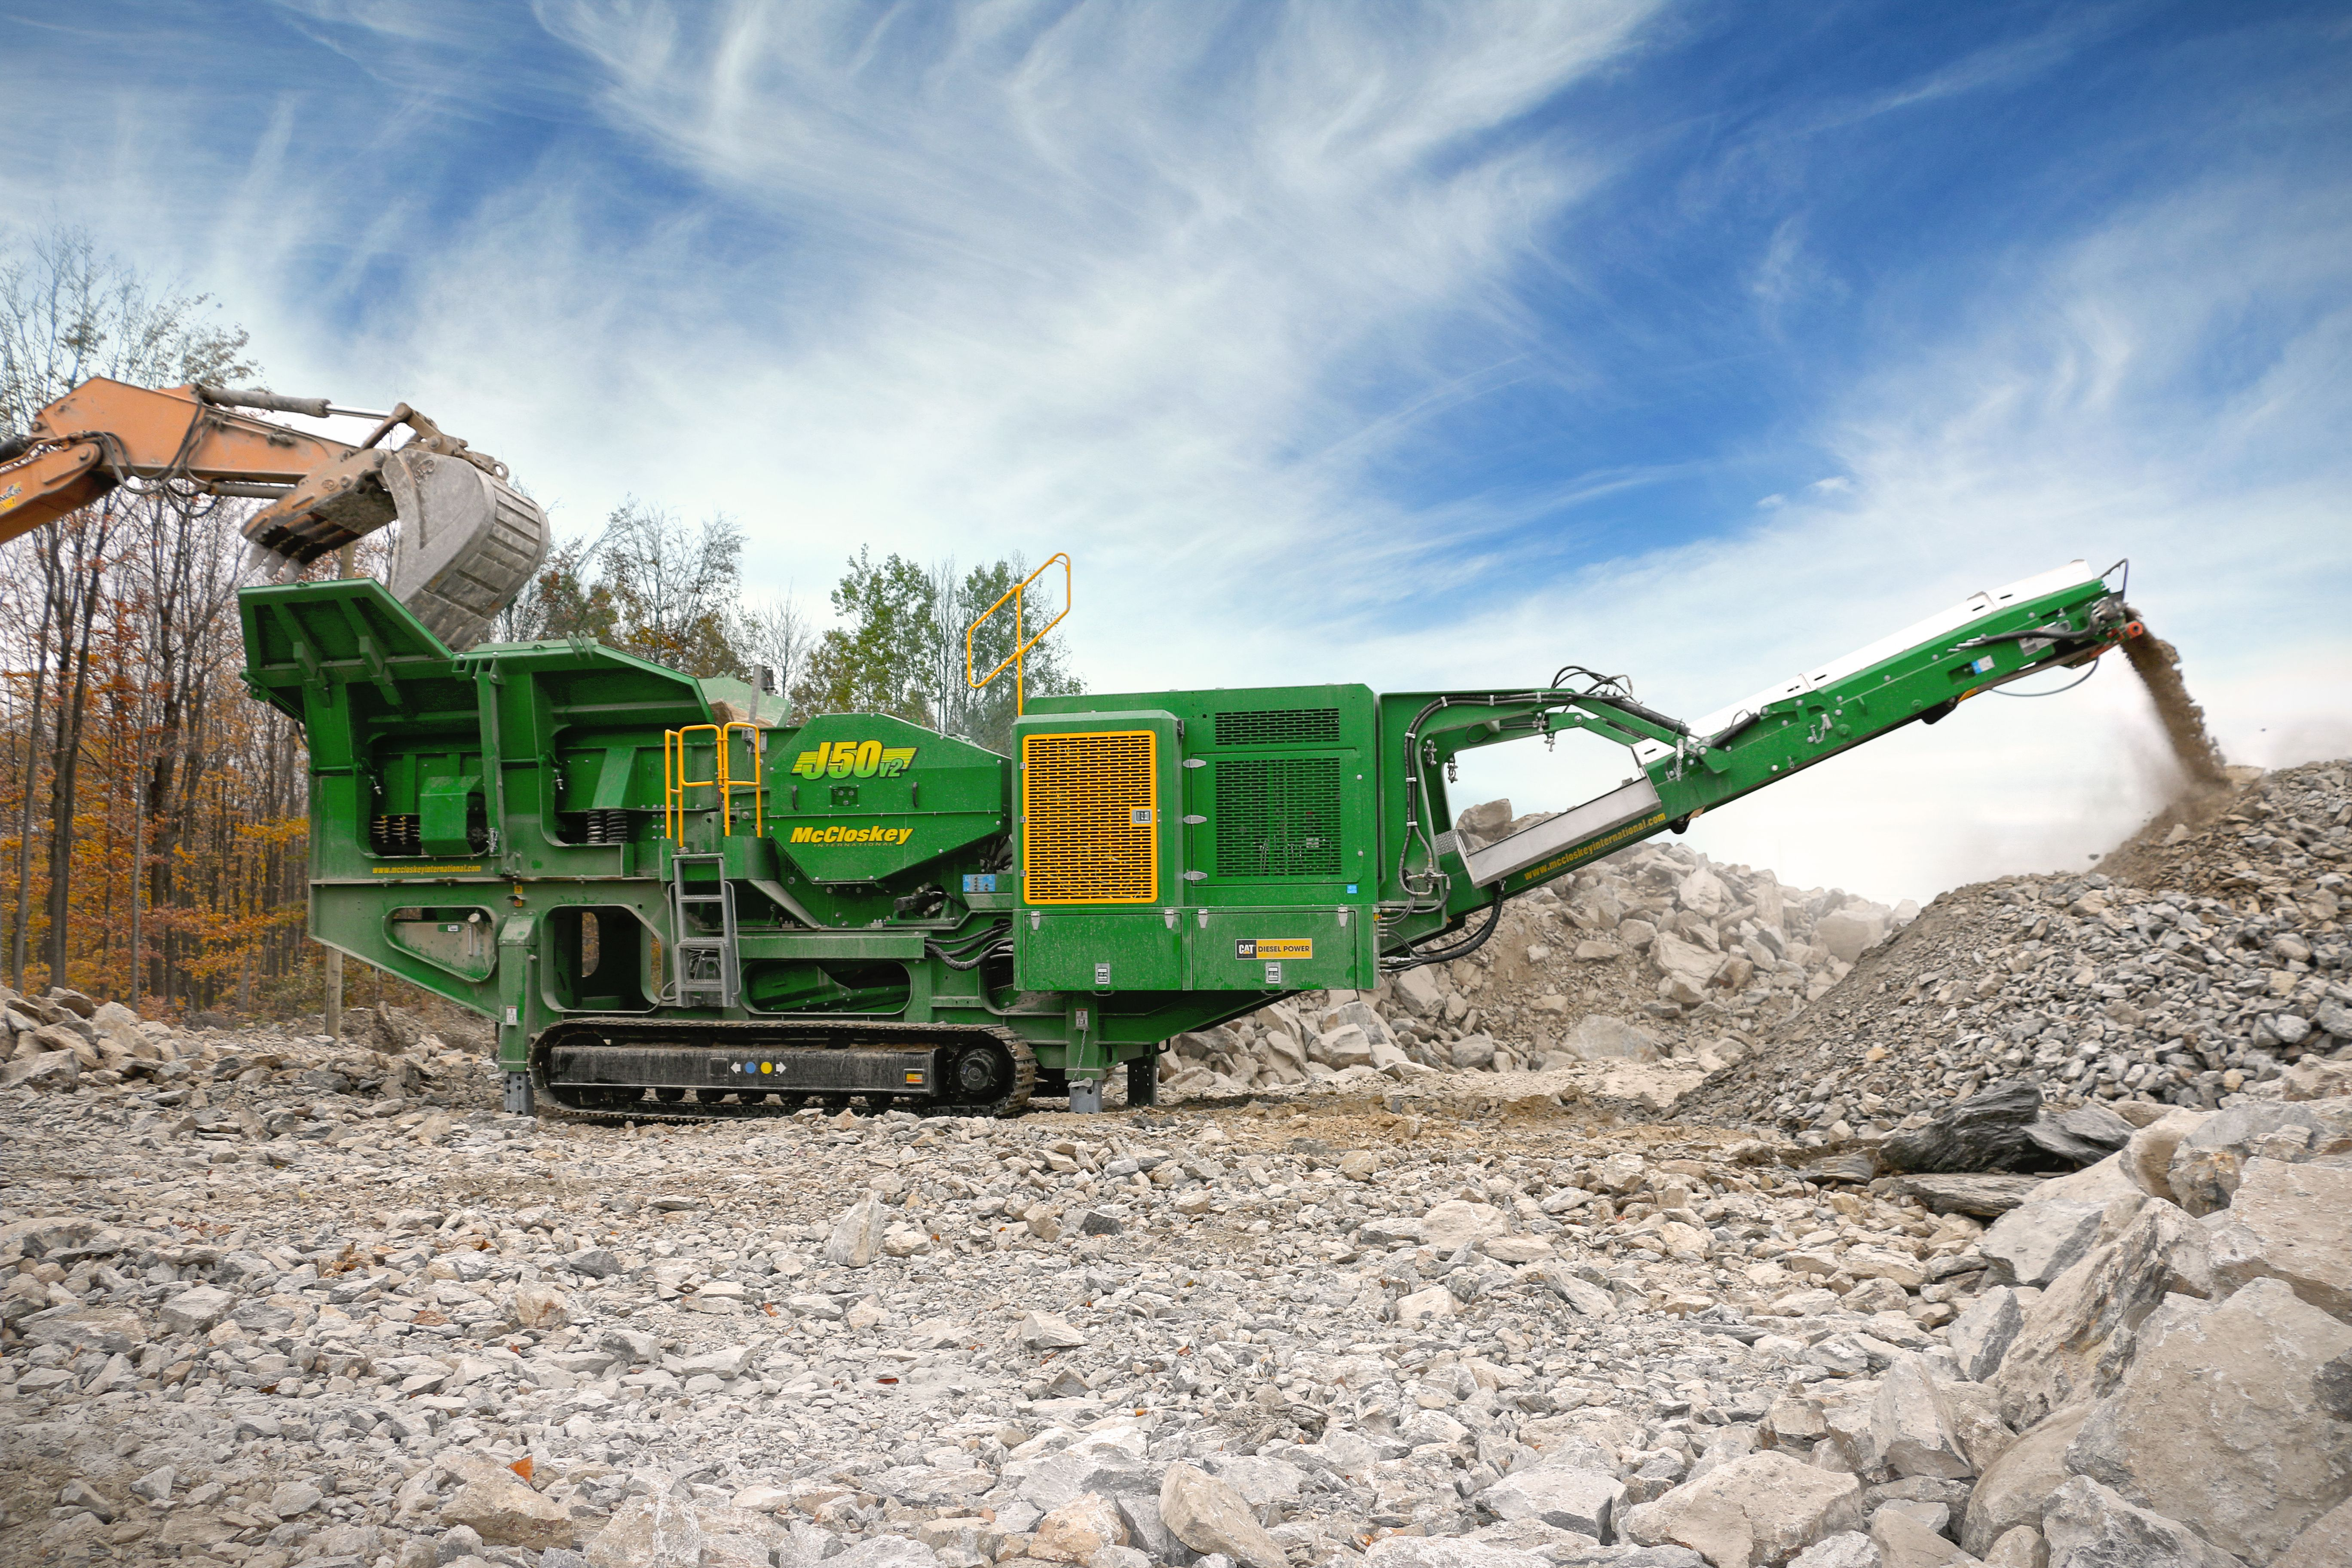 McCloskey J50 Jaw Crusher crushing material